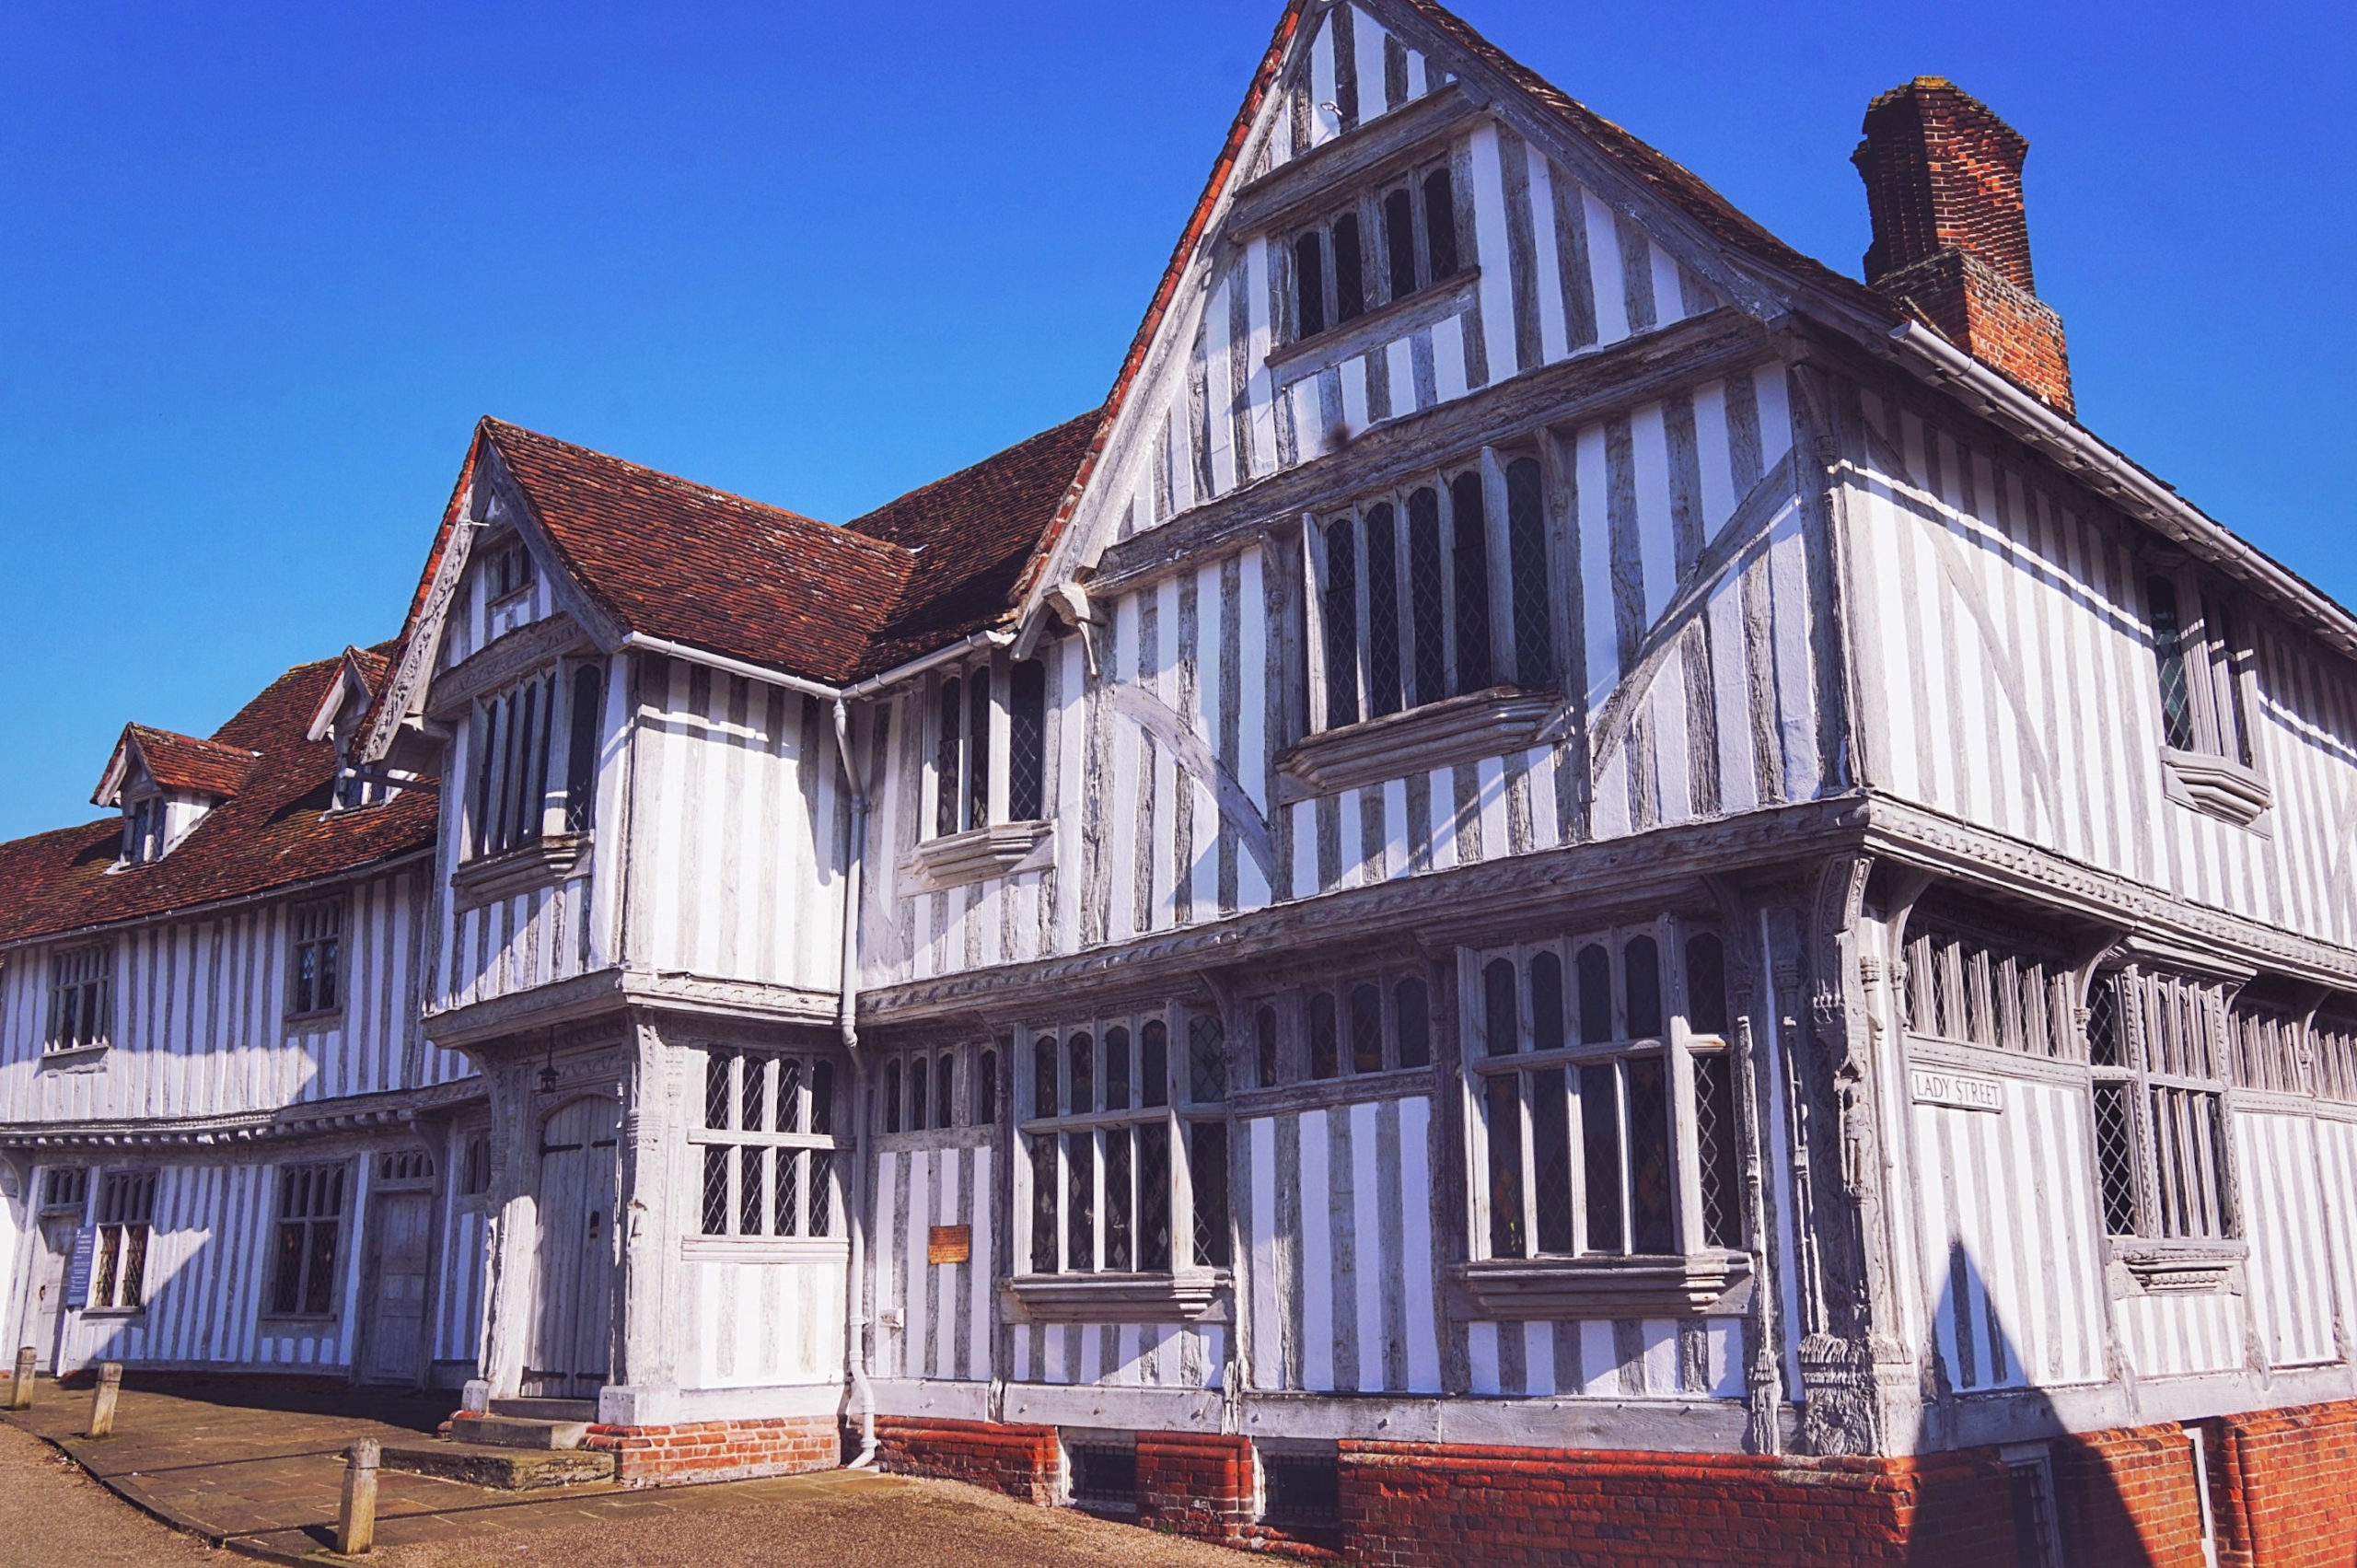 Harry Potter filming locations: visit the real-life Godric's Hollow!